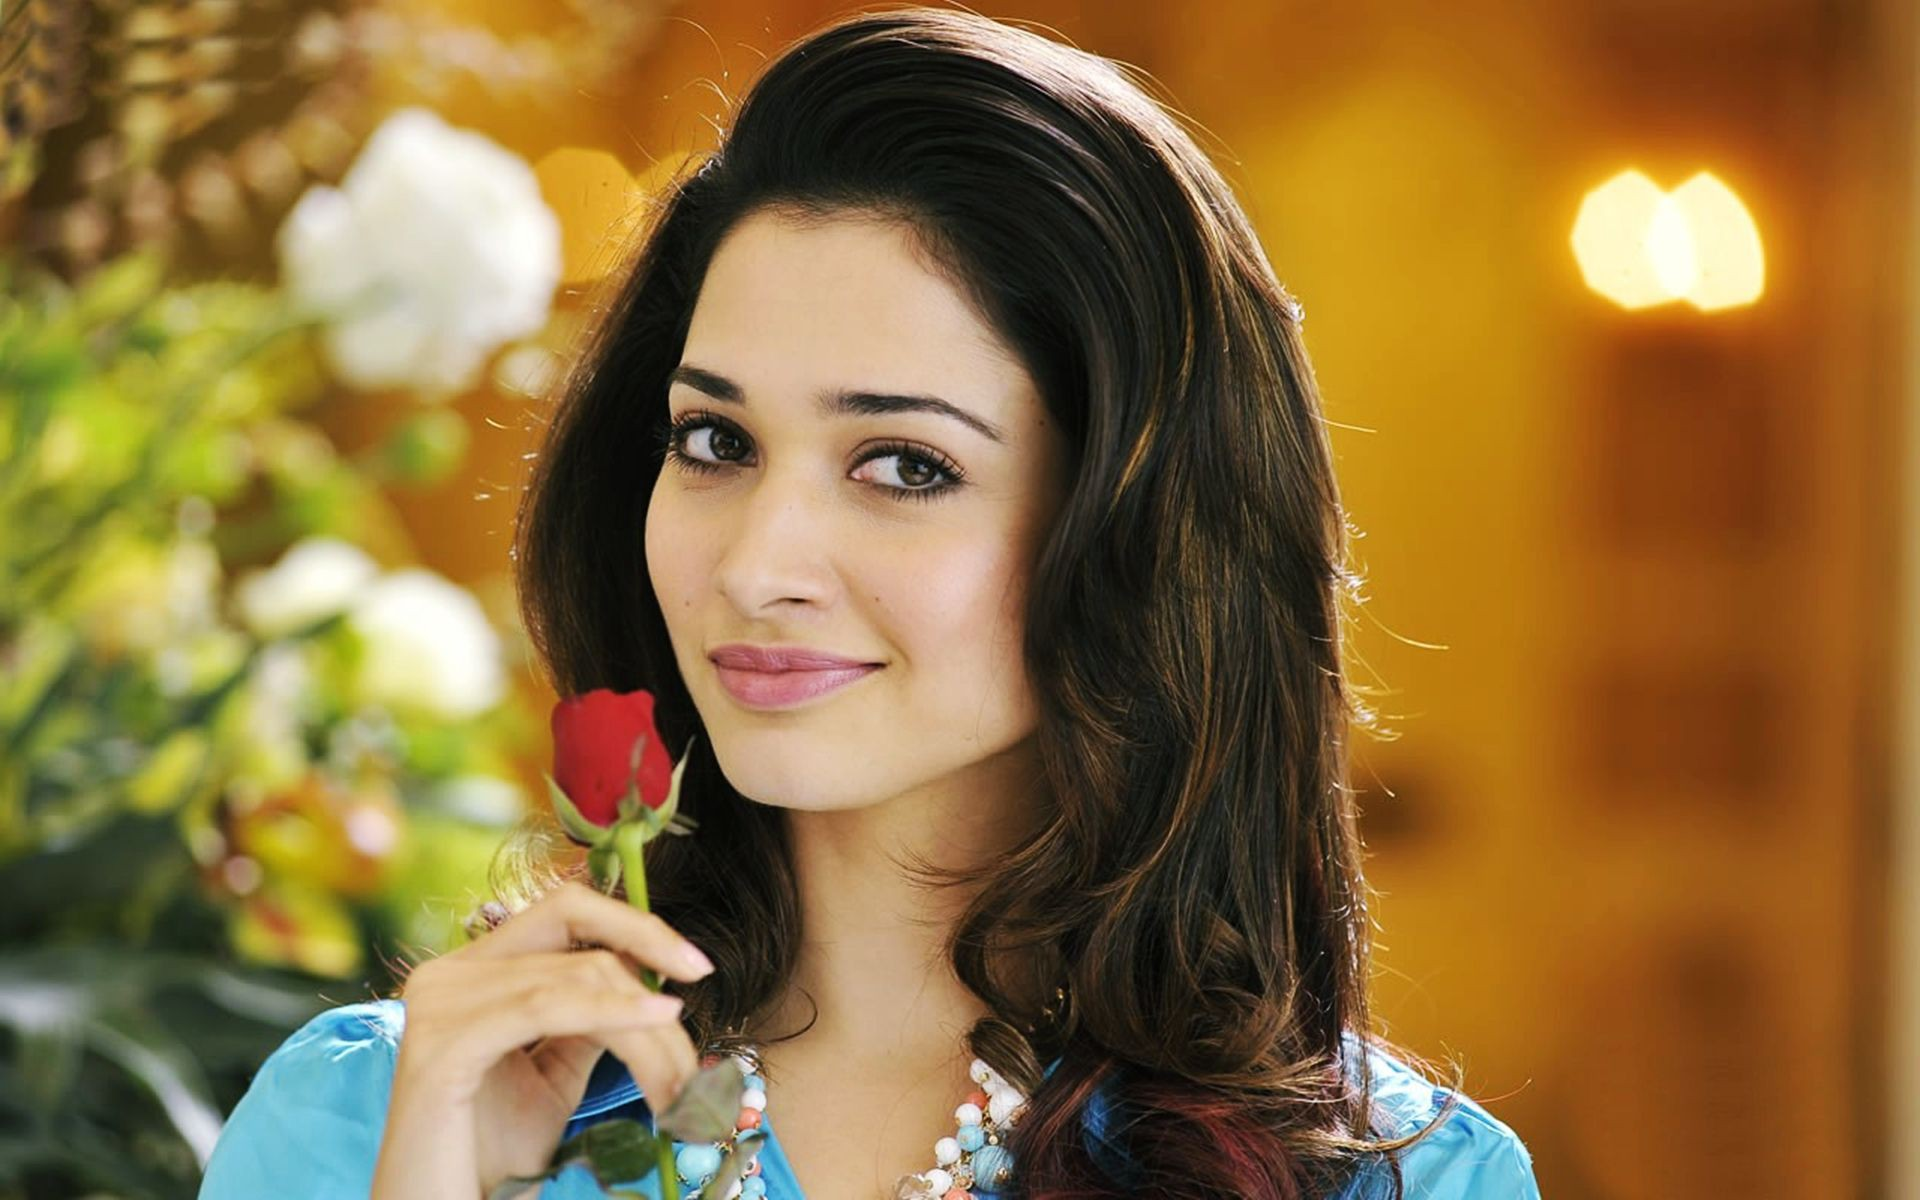 Tamanna Hd Saree Wallpaper: Tamanna Bhatia Wallpapers, Pictures, Images